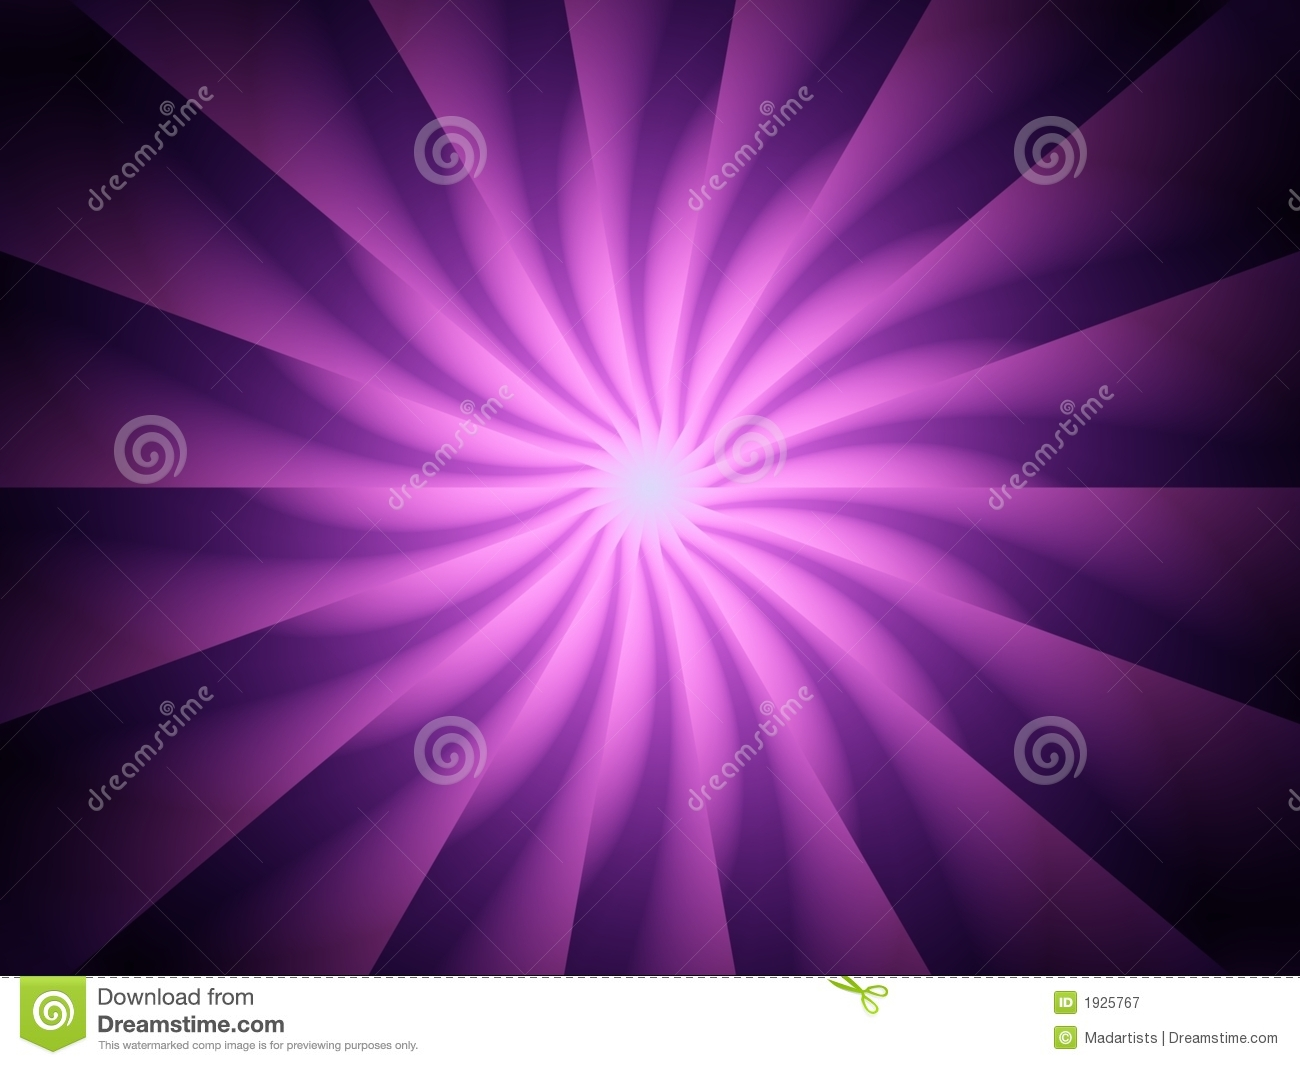 purple swirl background stock - photo #47